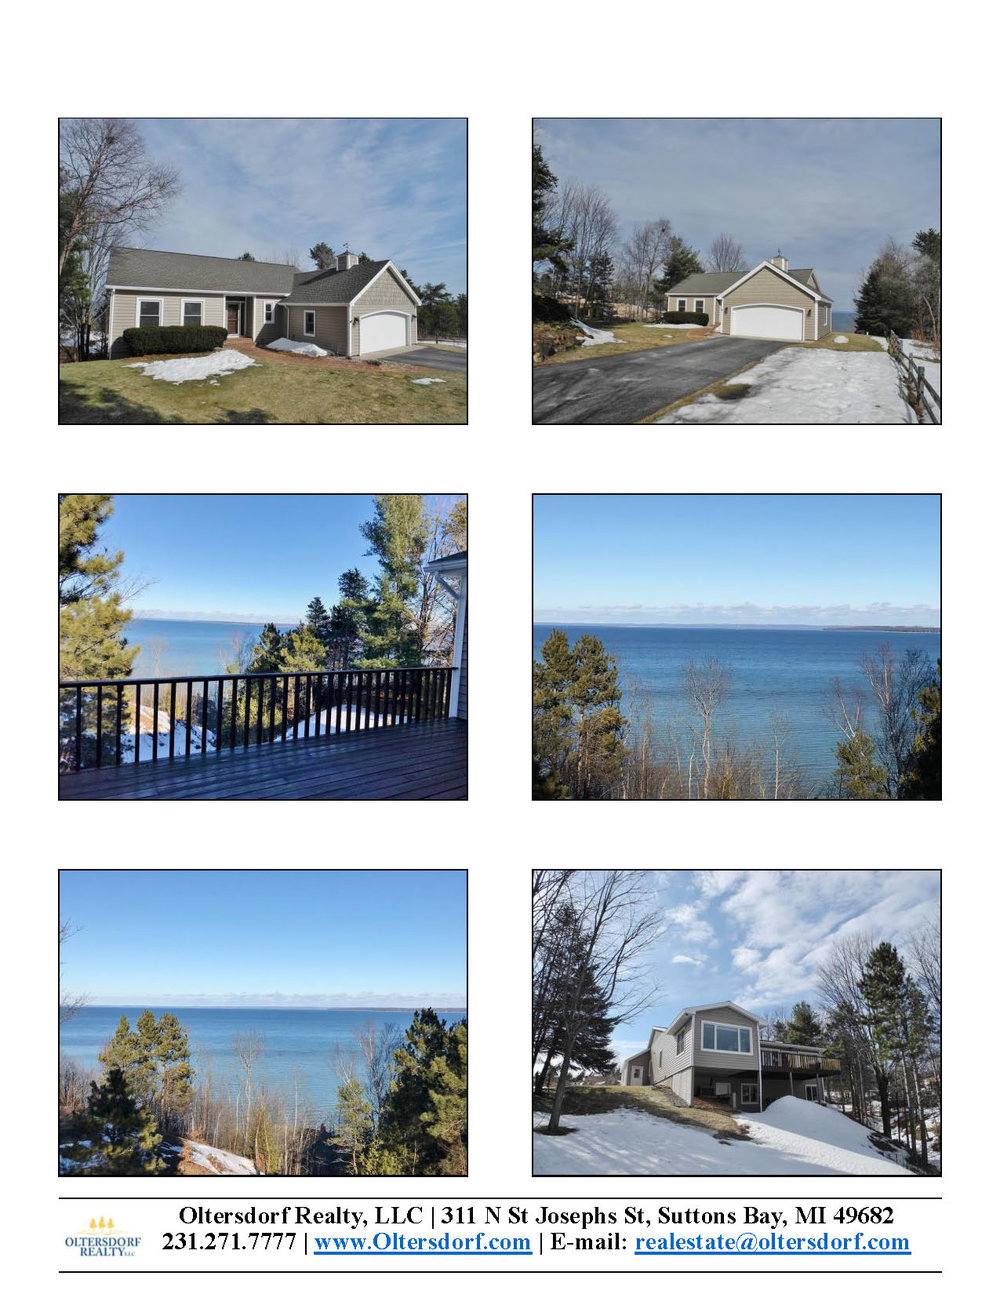 1771 S Cherry Blossom Lane, Suttons Bay Marketing Packet - Real Estate for sale by oltersdorf realty llc_Page_02.jpg